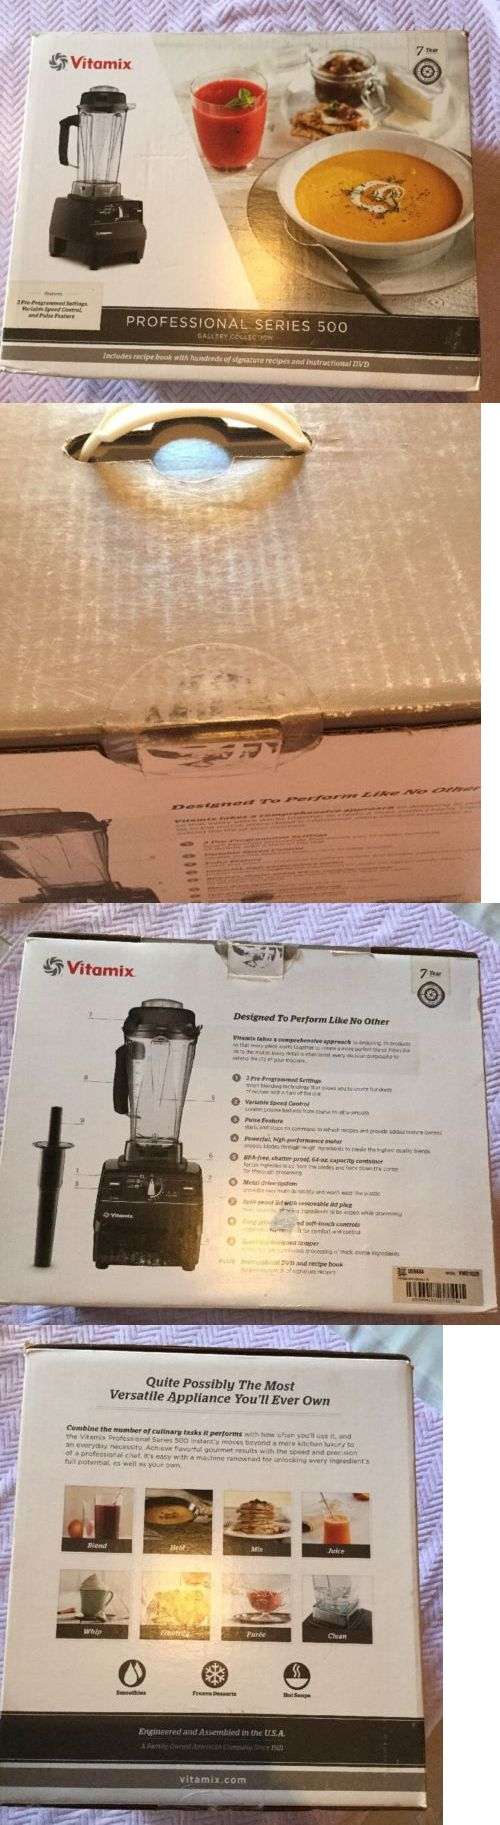 Blenders Countertop 133704: Vitamix Professional Series 500 Gallery Collection Blender Pro Vm0102b Black -> BUY IT NOW ONLY: $369 on eBay!